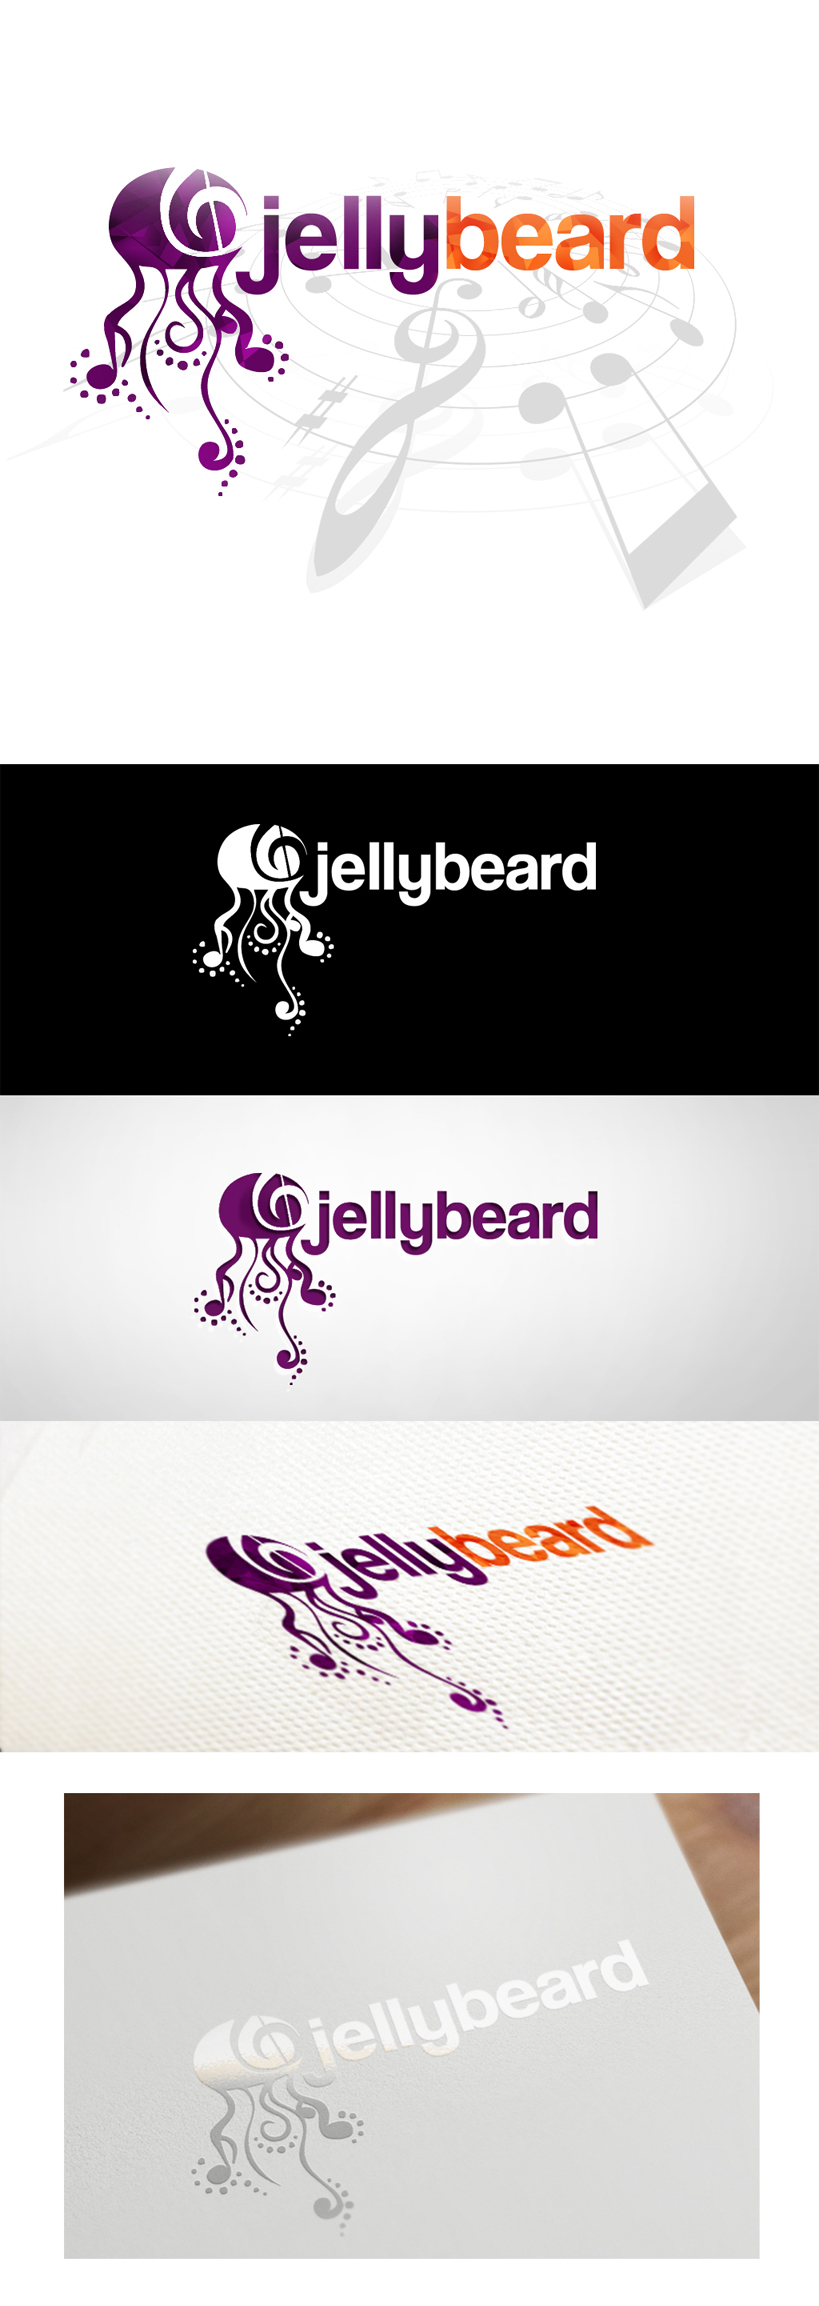 Logo Design by Oliver WangHo - Entry No. 28 in the Logo Design Contest jellybeard Logo Design.